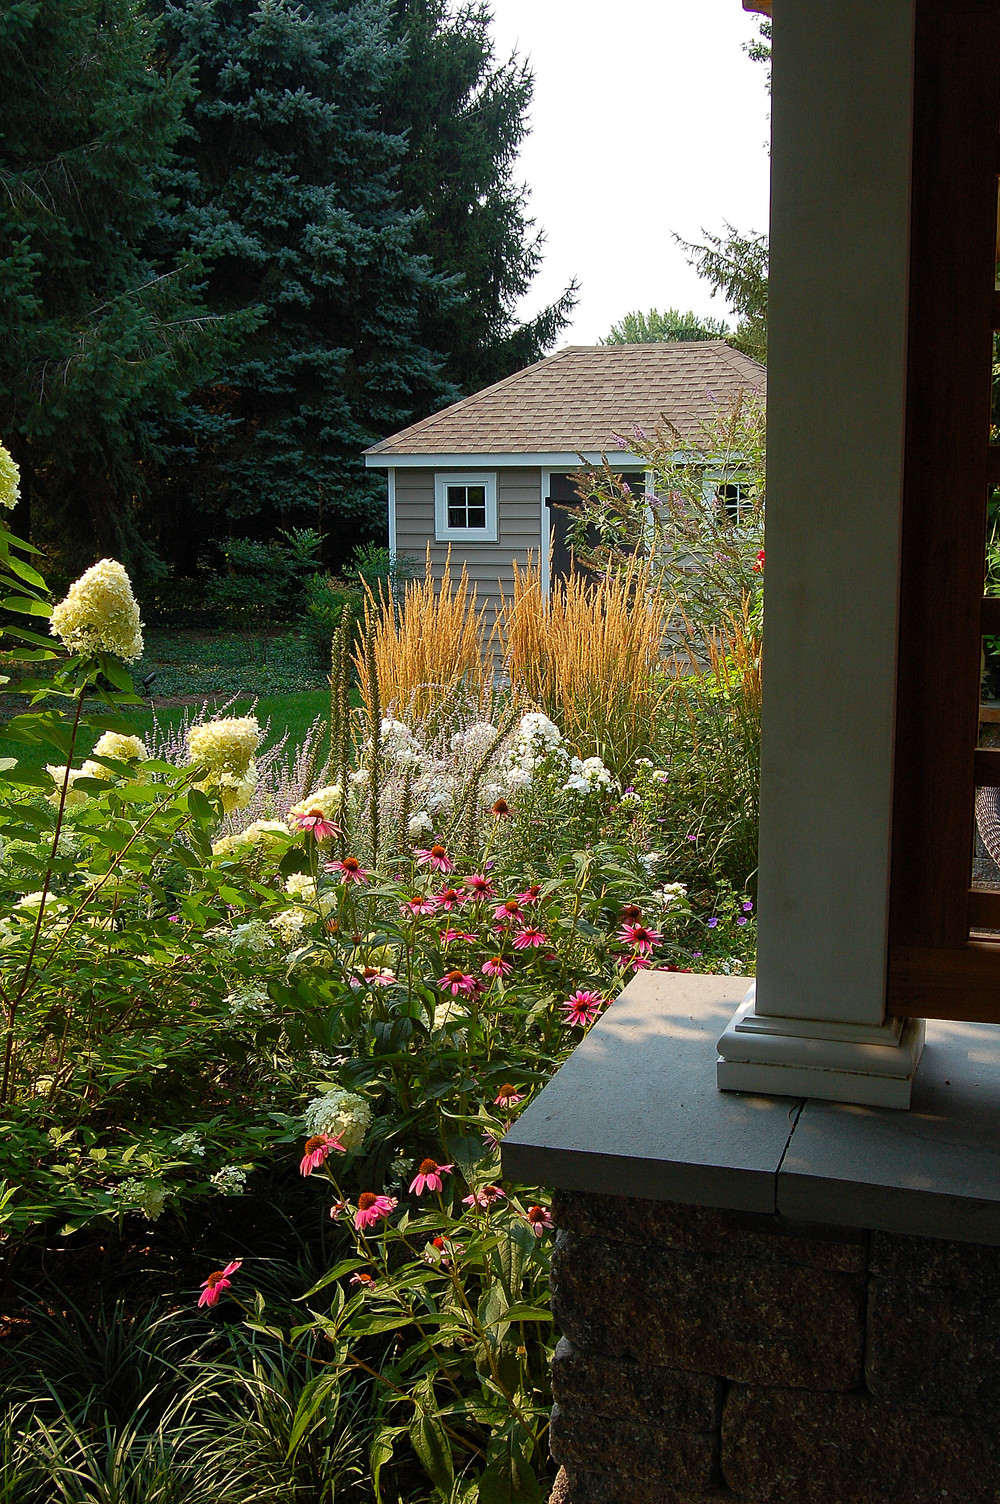 Garden design and patio in Lititz, PA